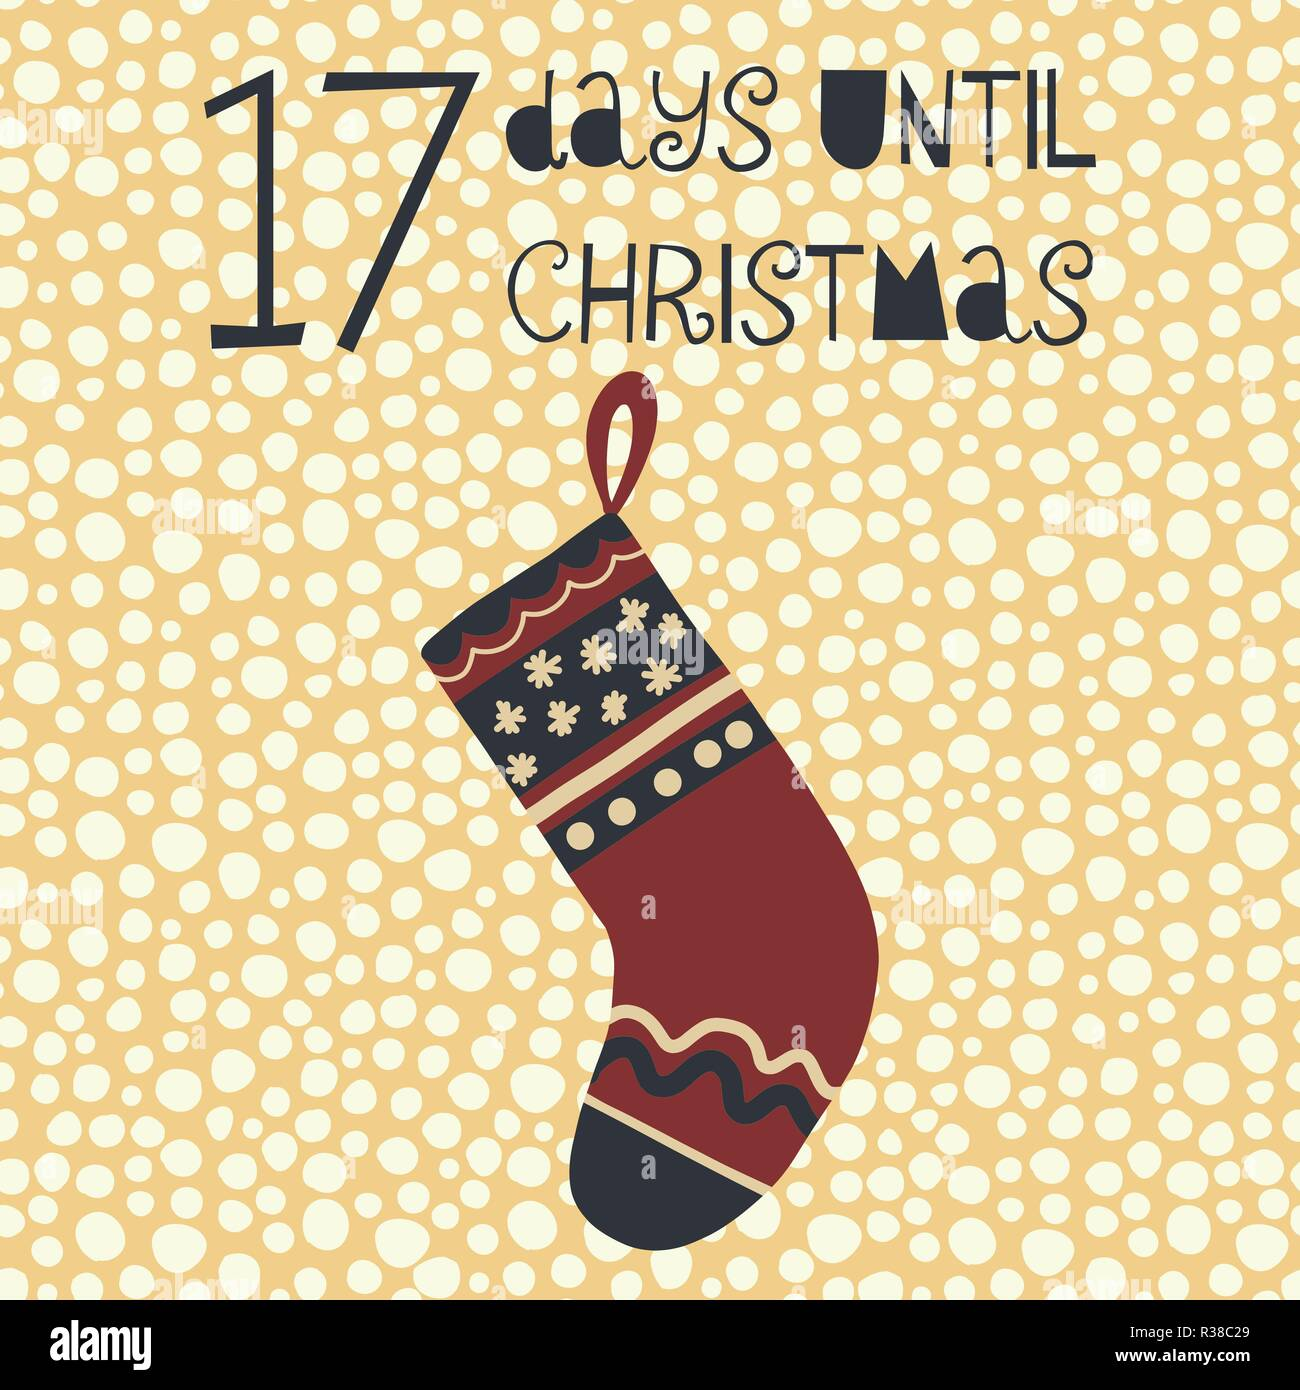 How Many Days Until Christmas Countdown.17 Days Until Christmas Vector Illustration Christmas